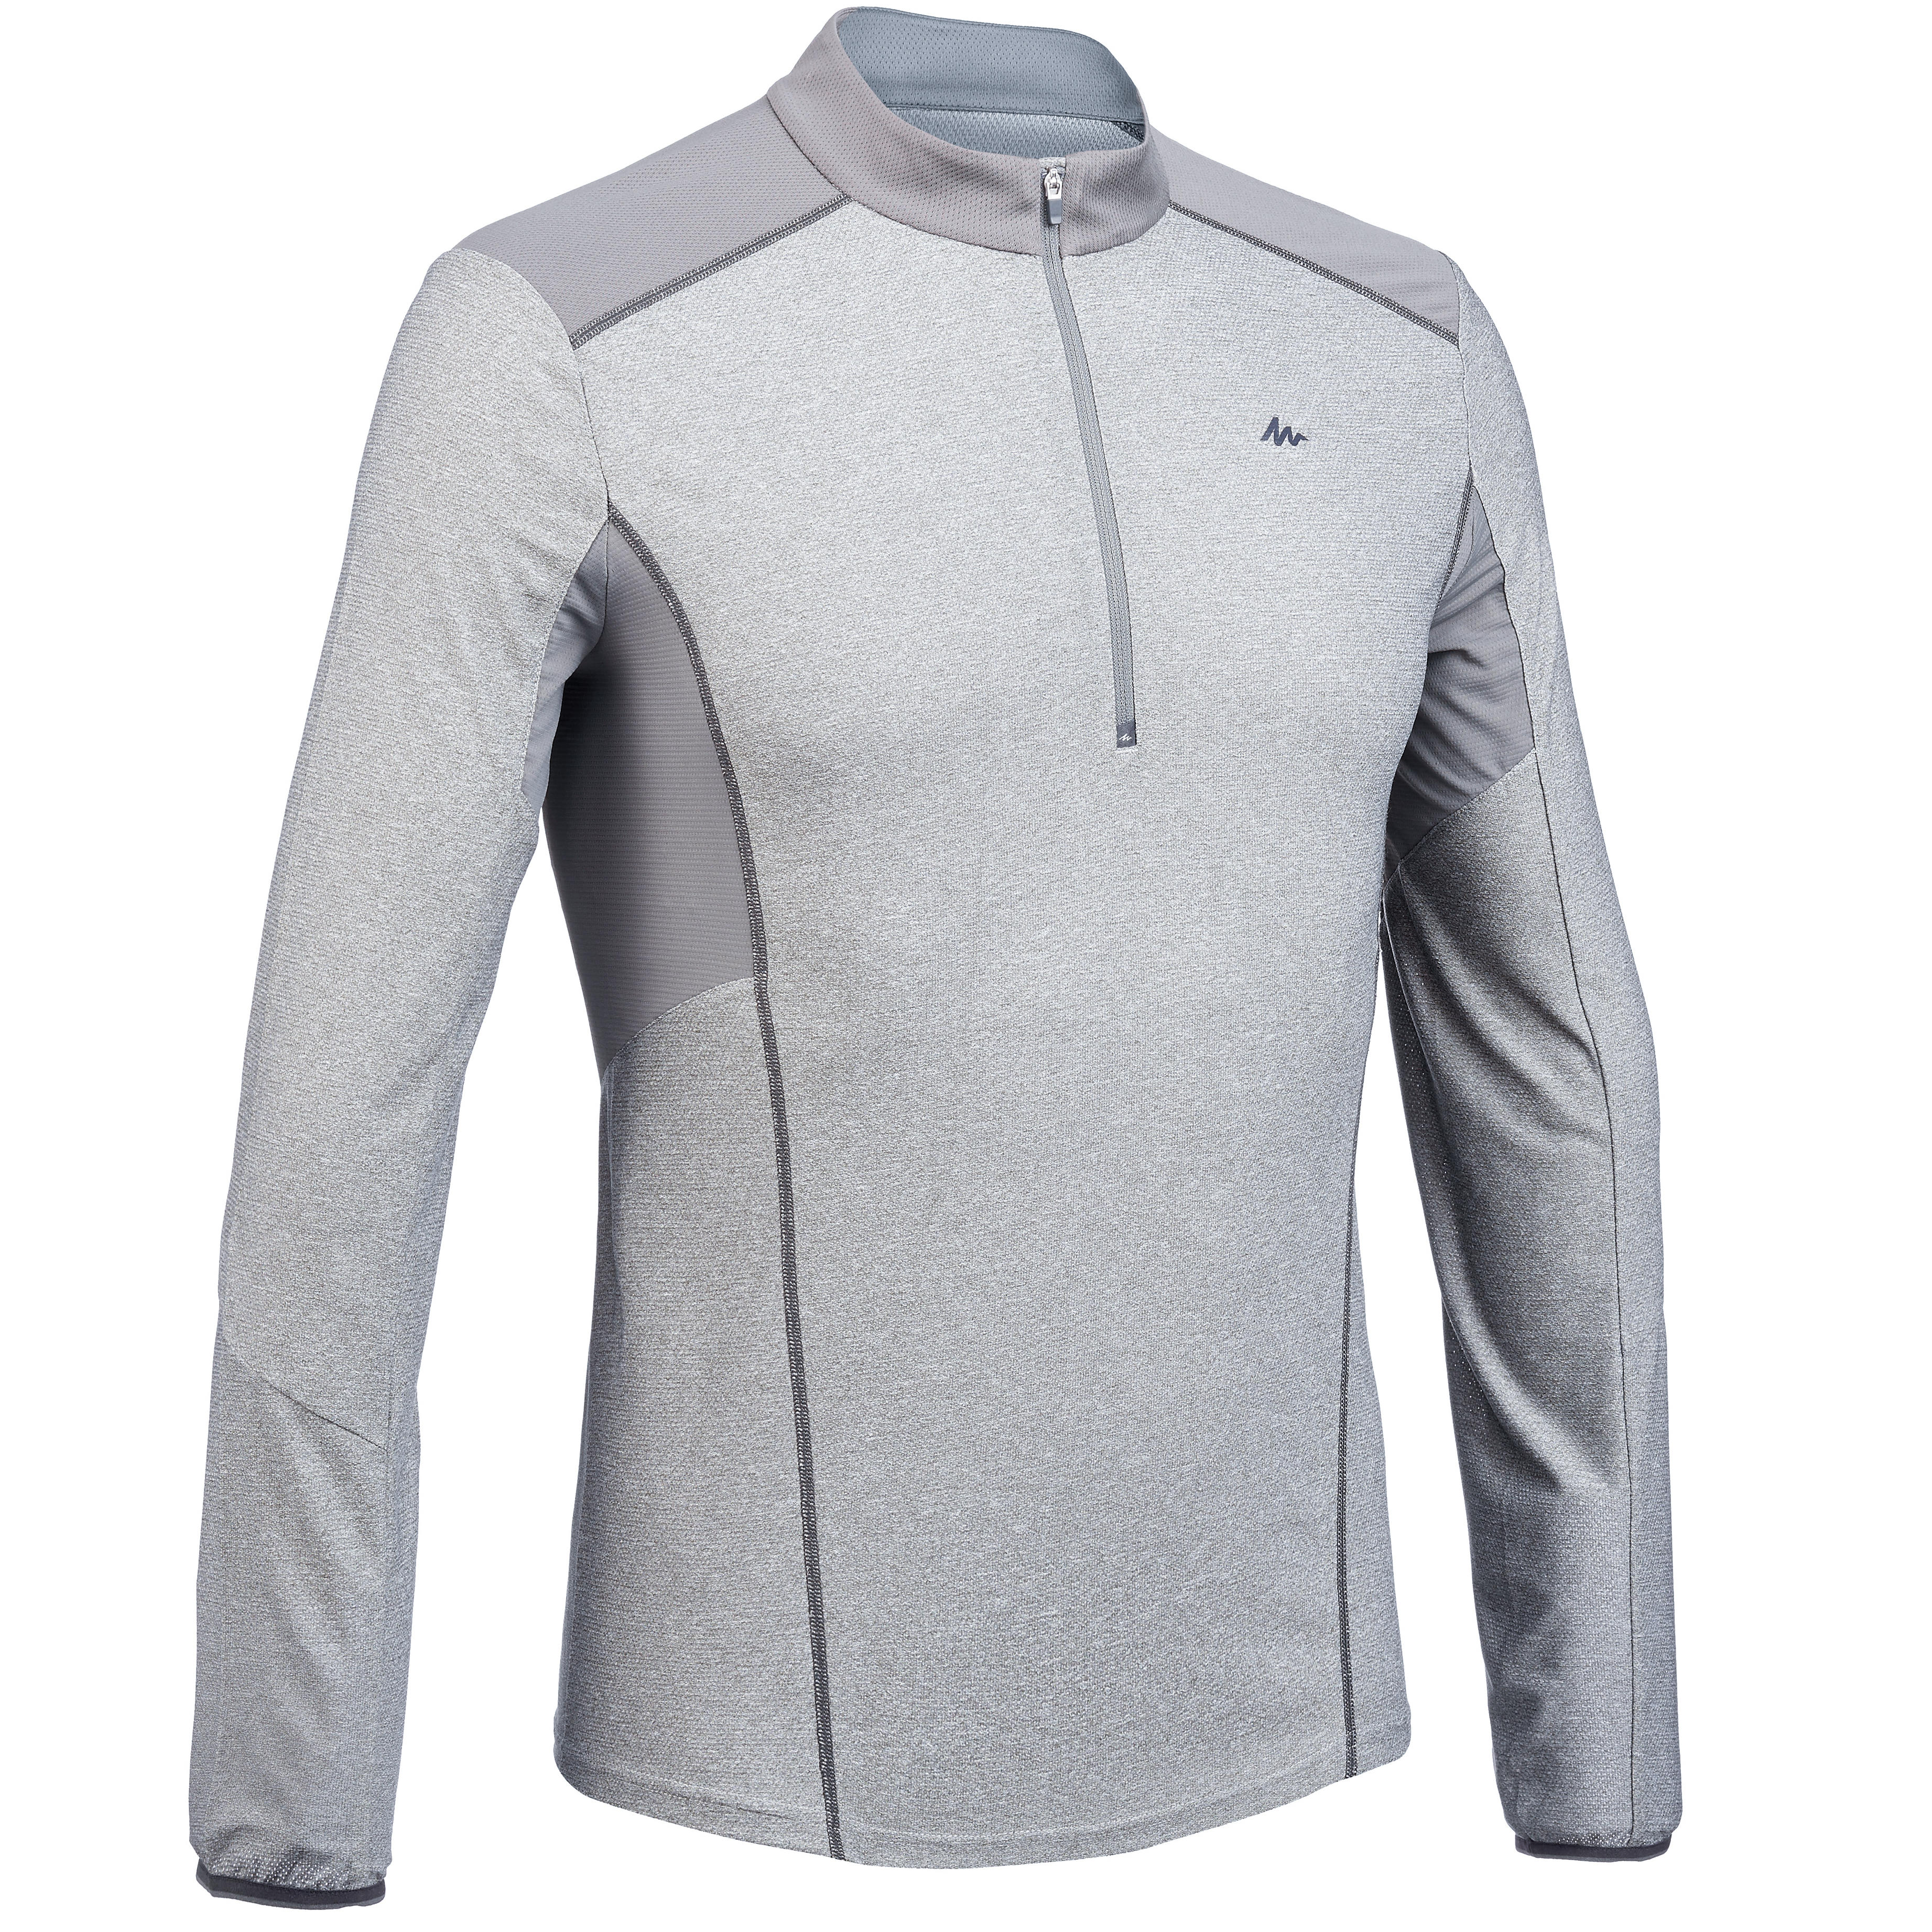 Men's Long-sleeved...